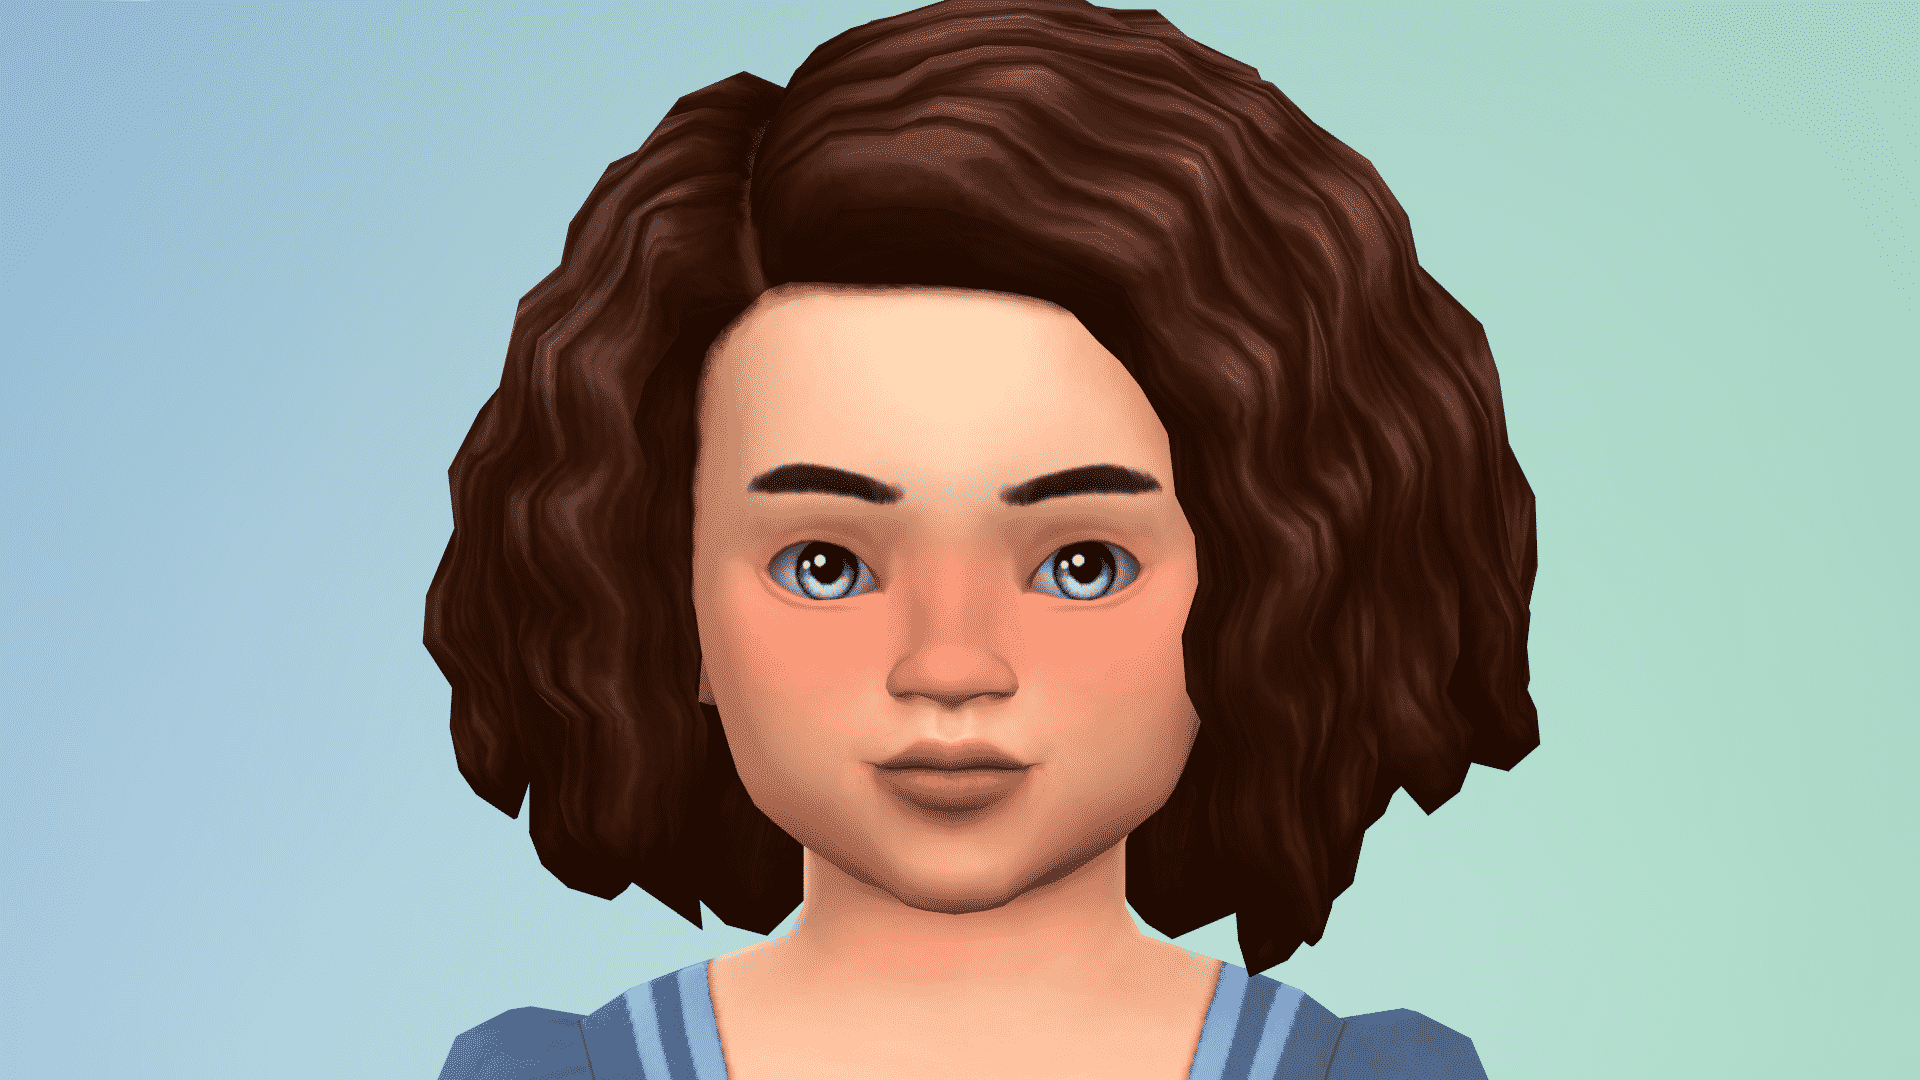 The Sims 4 How To Enable Custom Eyes For Toddlers